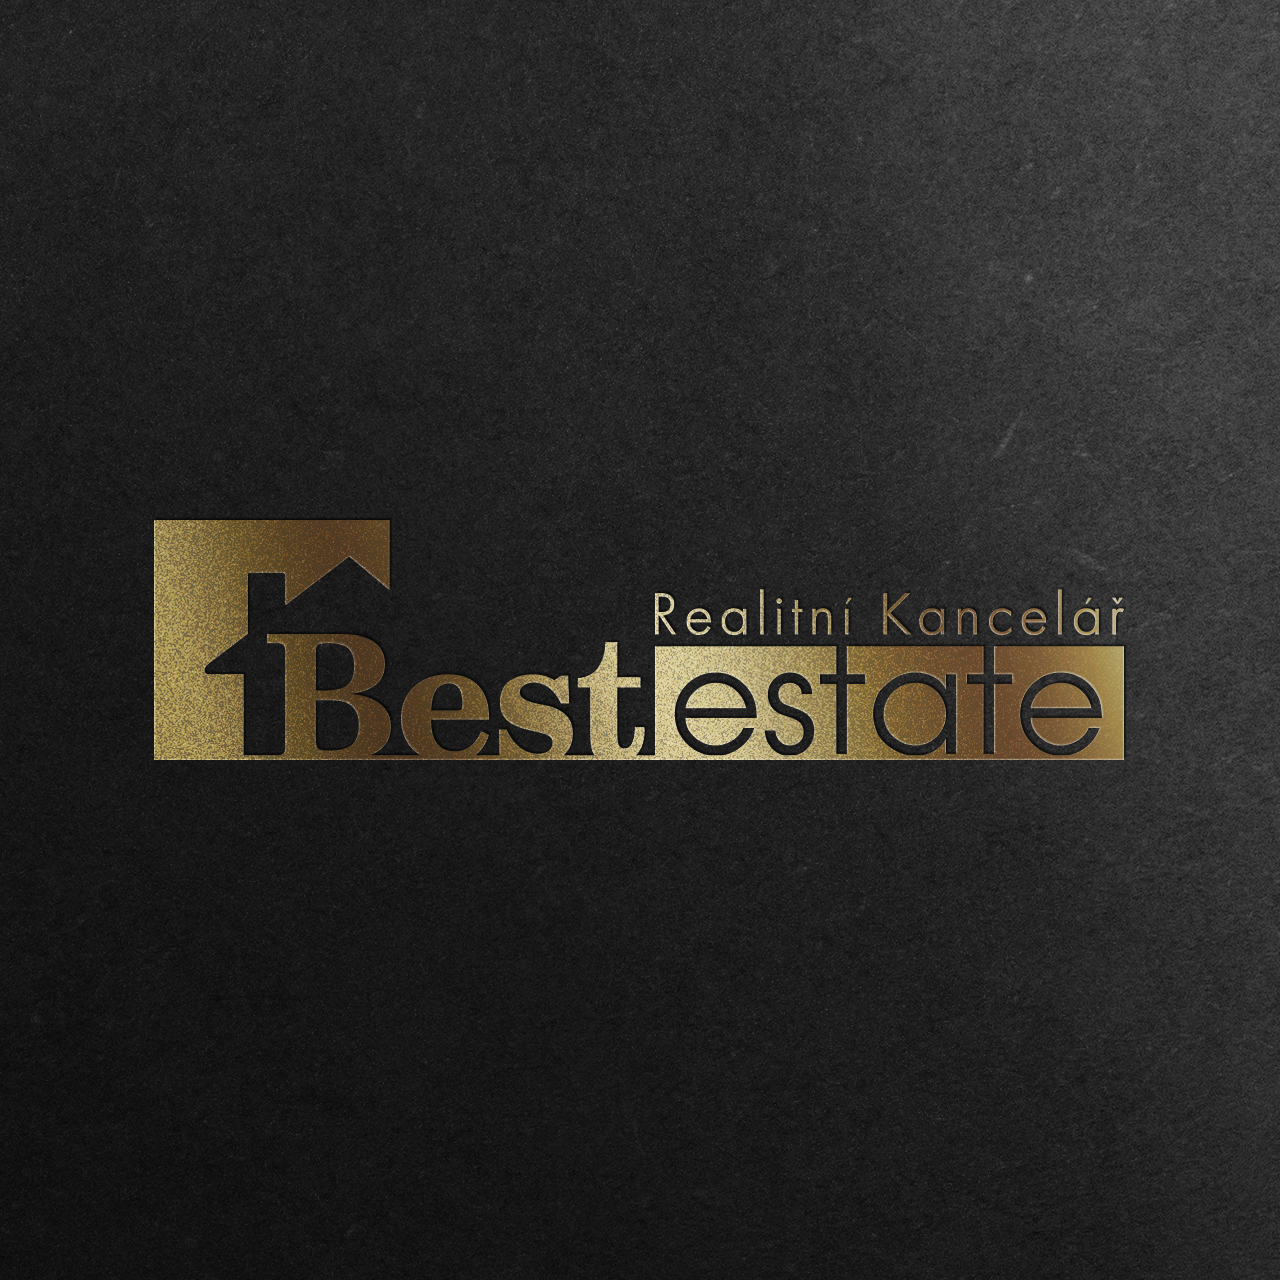 best estate-logo-mockup-gold